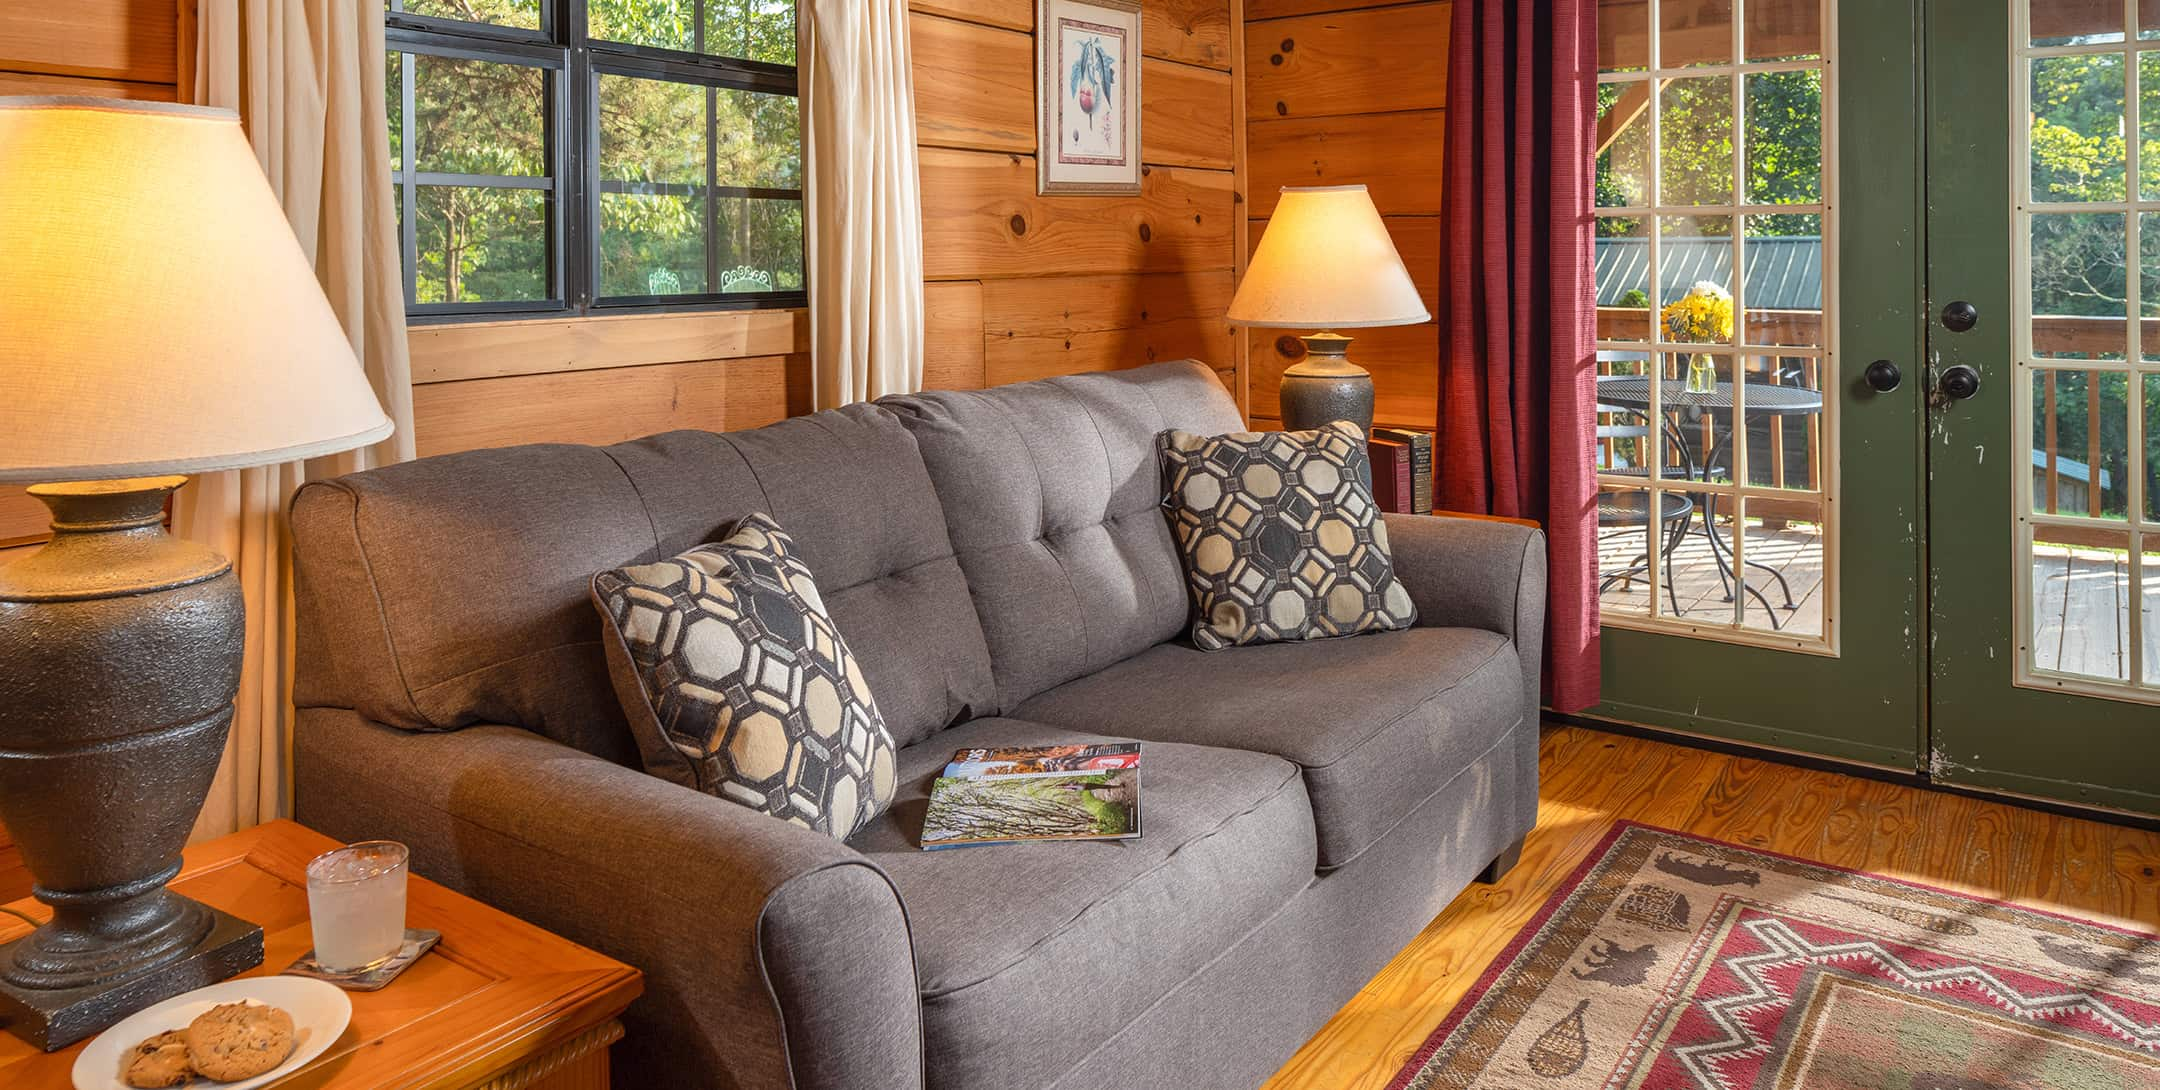 Looking Glass Mountain Cabin couch